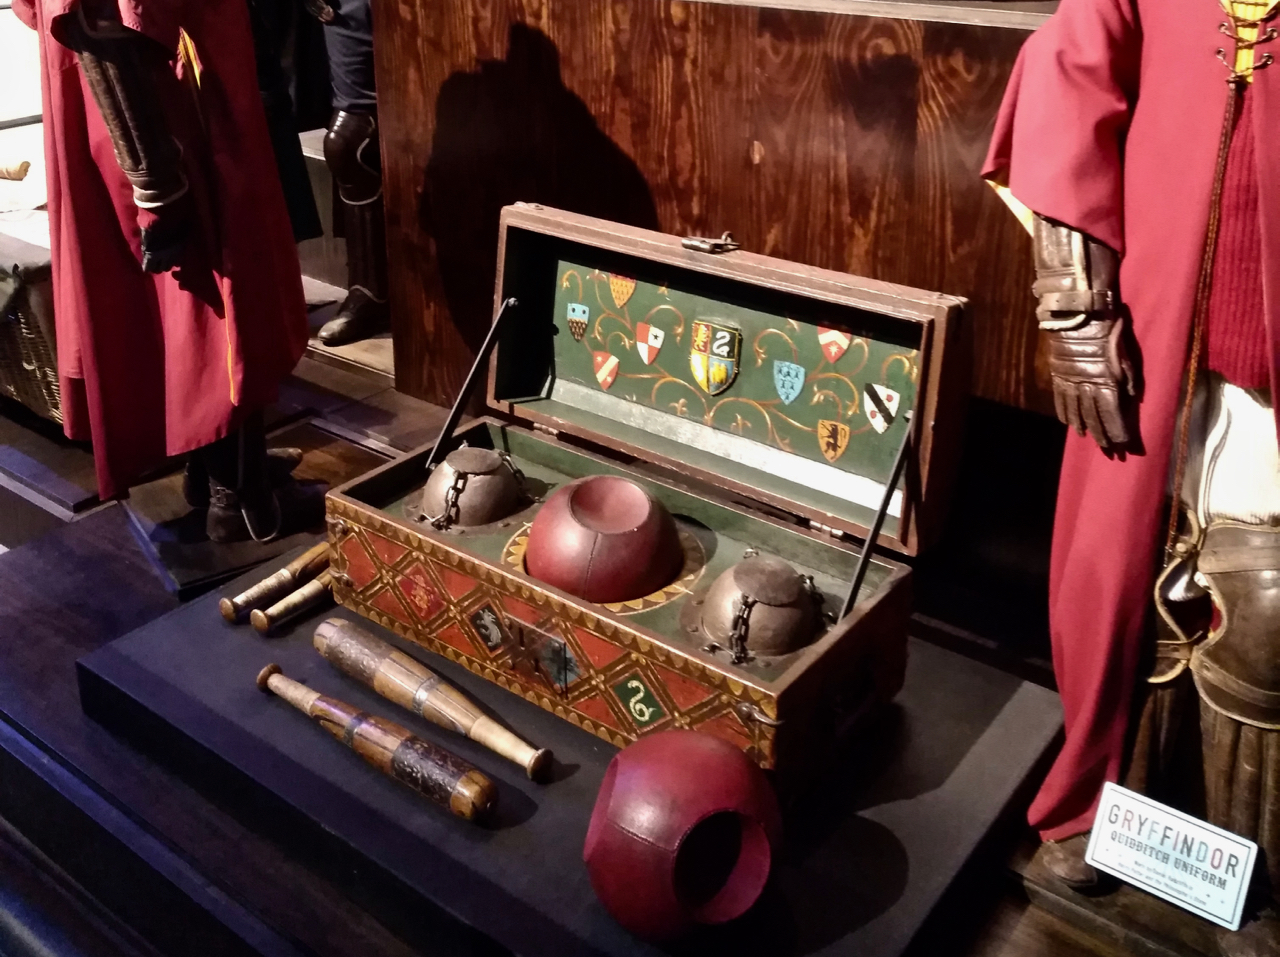 Quidditch Chest and props at the Harry Potter Warner Bros Studio